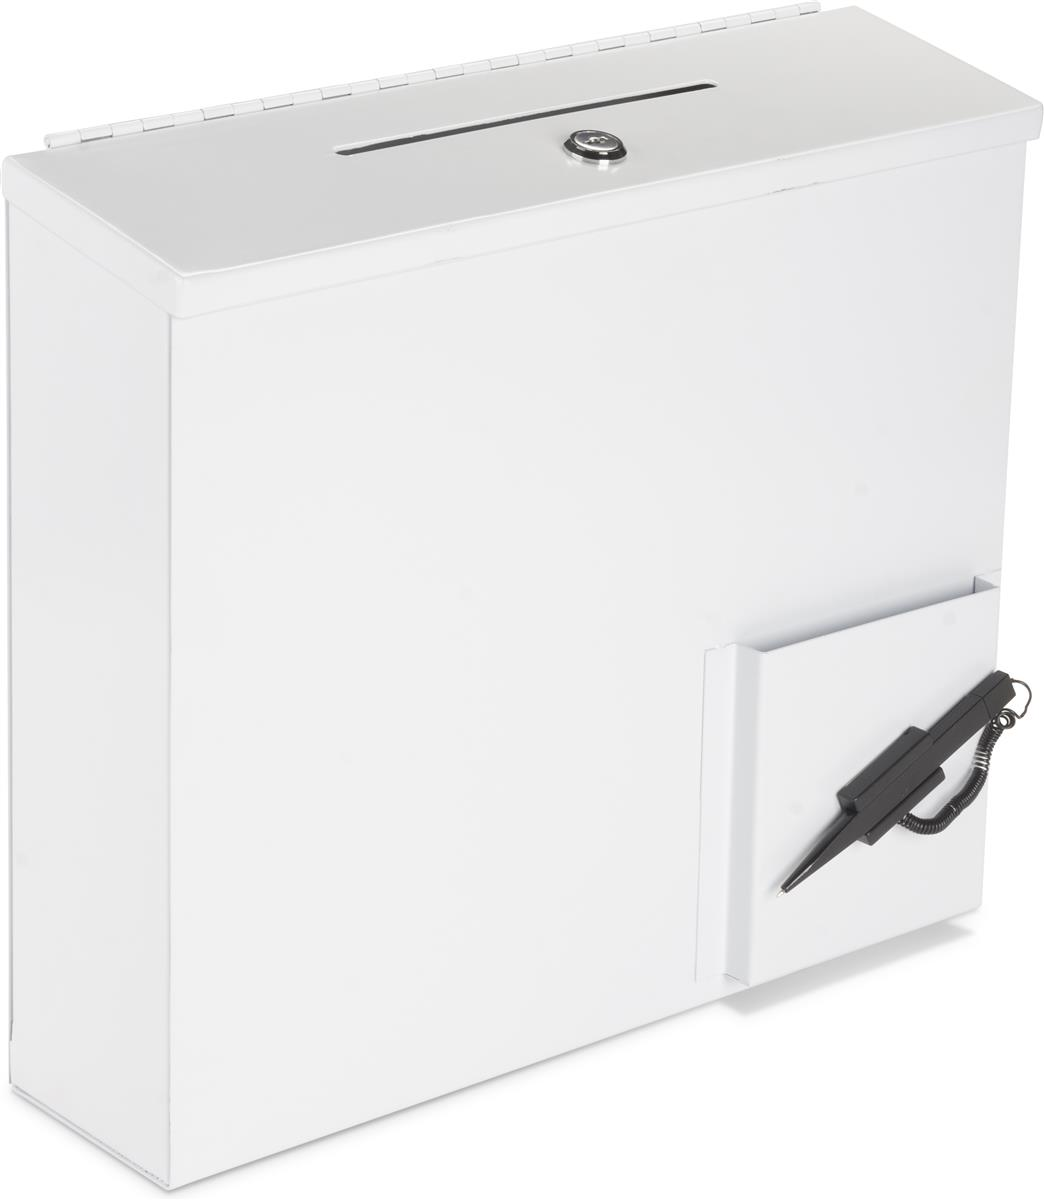 White Donation Box With Paper Holder Wall Mount Or